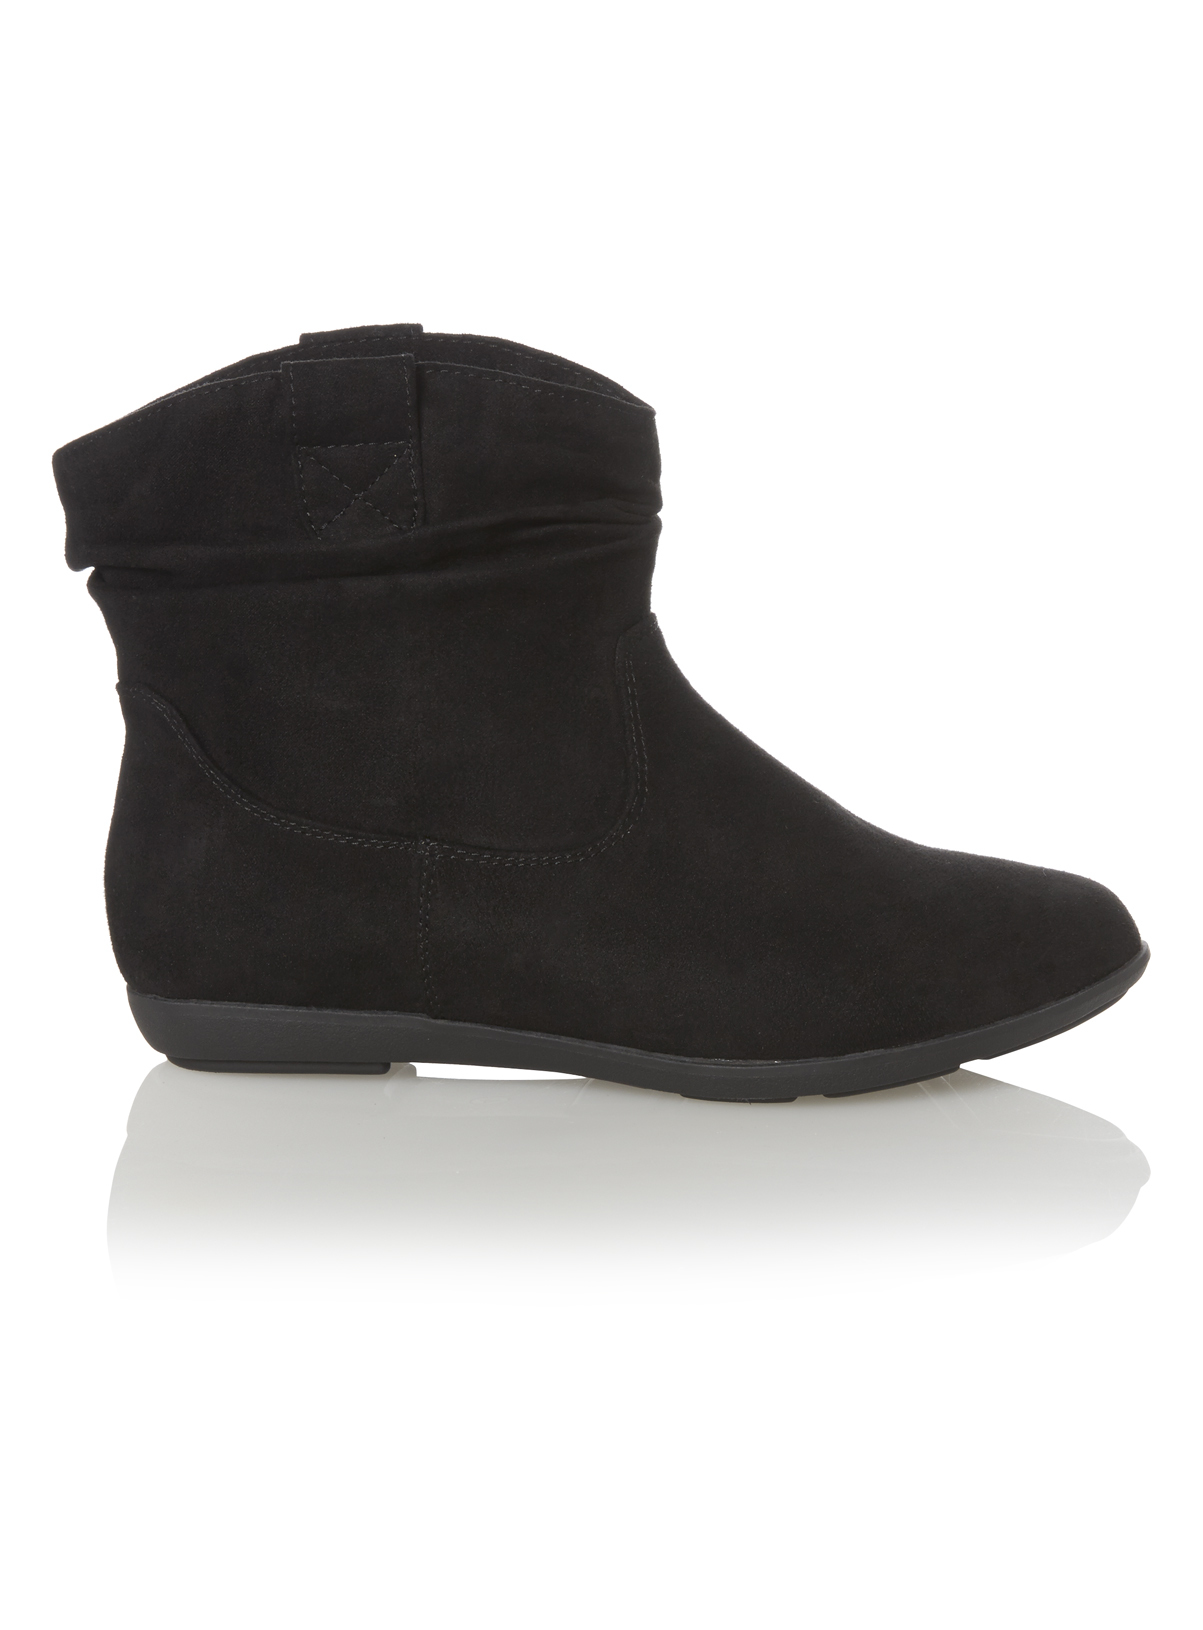 Womens Black Slouch Ankle Boot   Tu clothing